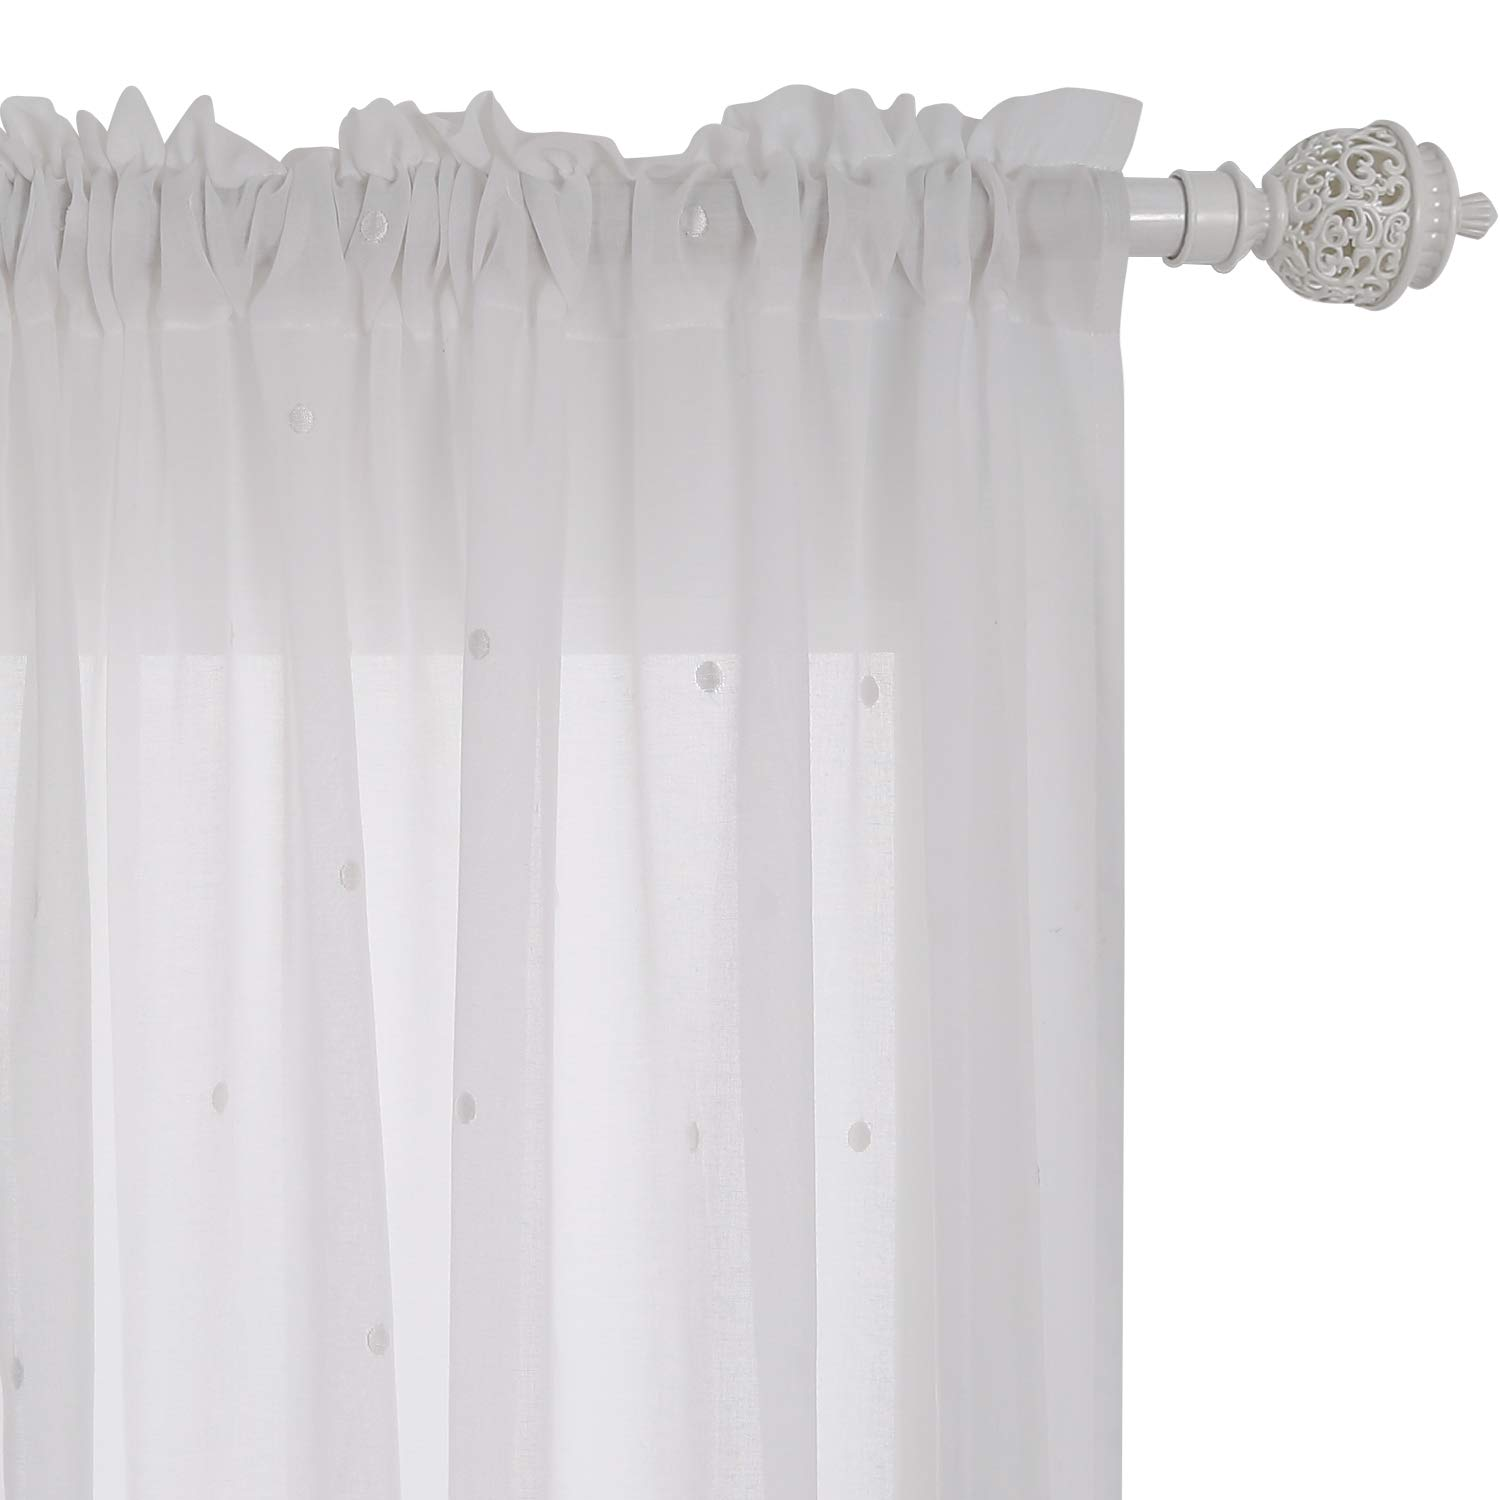 Deconovo Faux India Cotton Curtains White Curtains Embroidered Dot Rod Pocket Sheers Window Curtains 52W x 96L Inch White 1 Pair